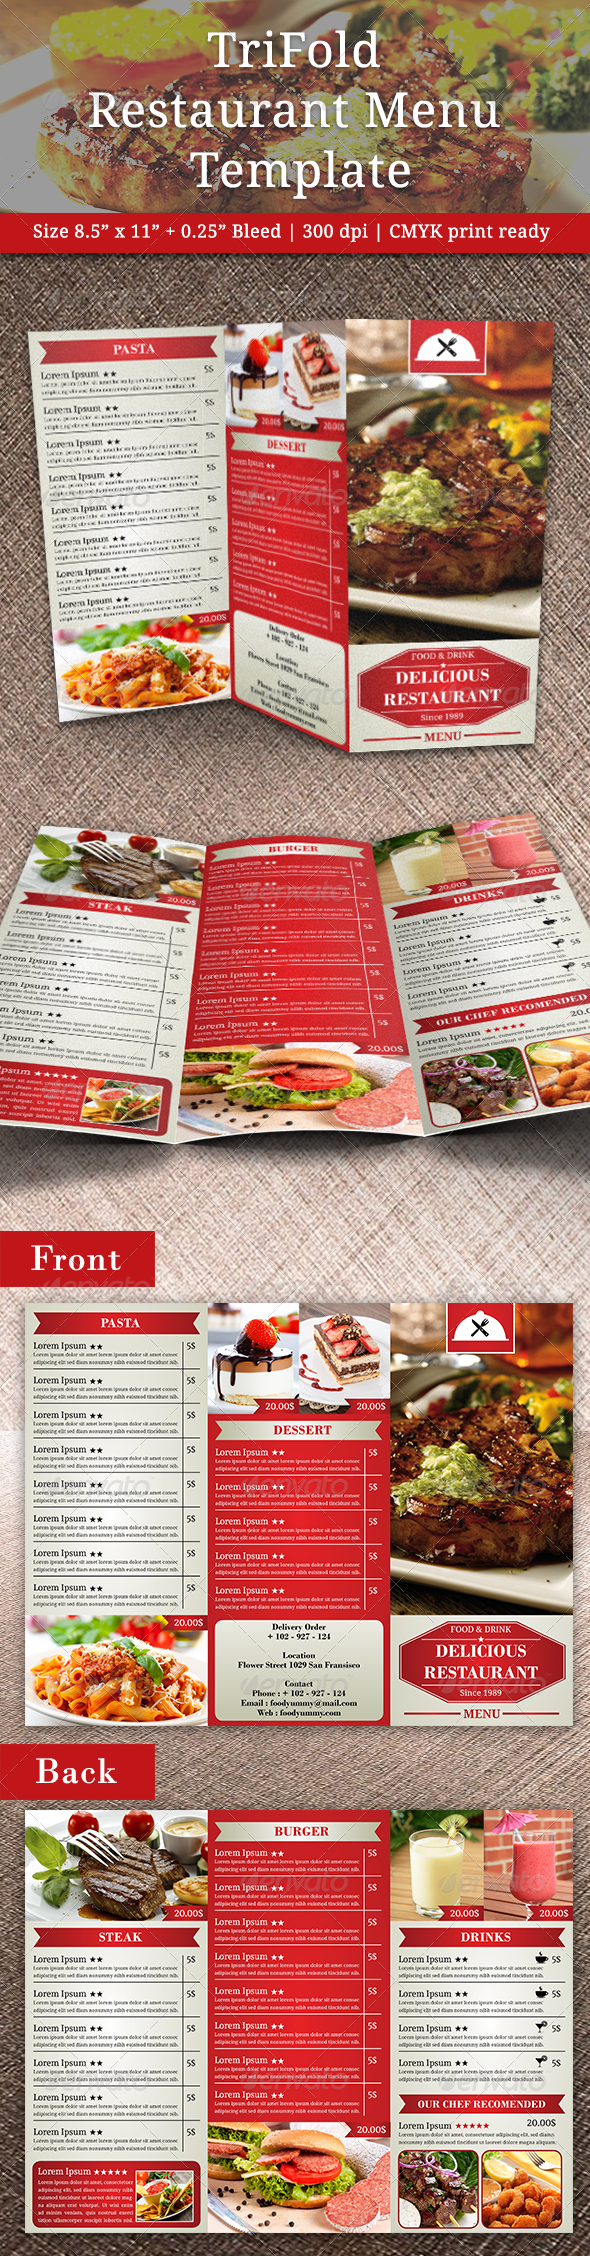 TriFold Restaurant Menu Template Vol 2